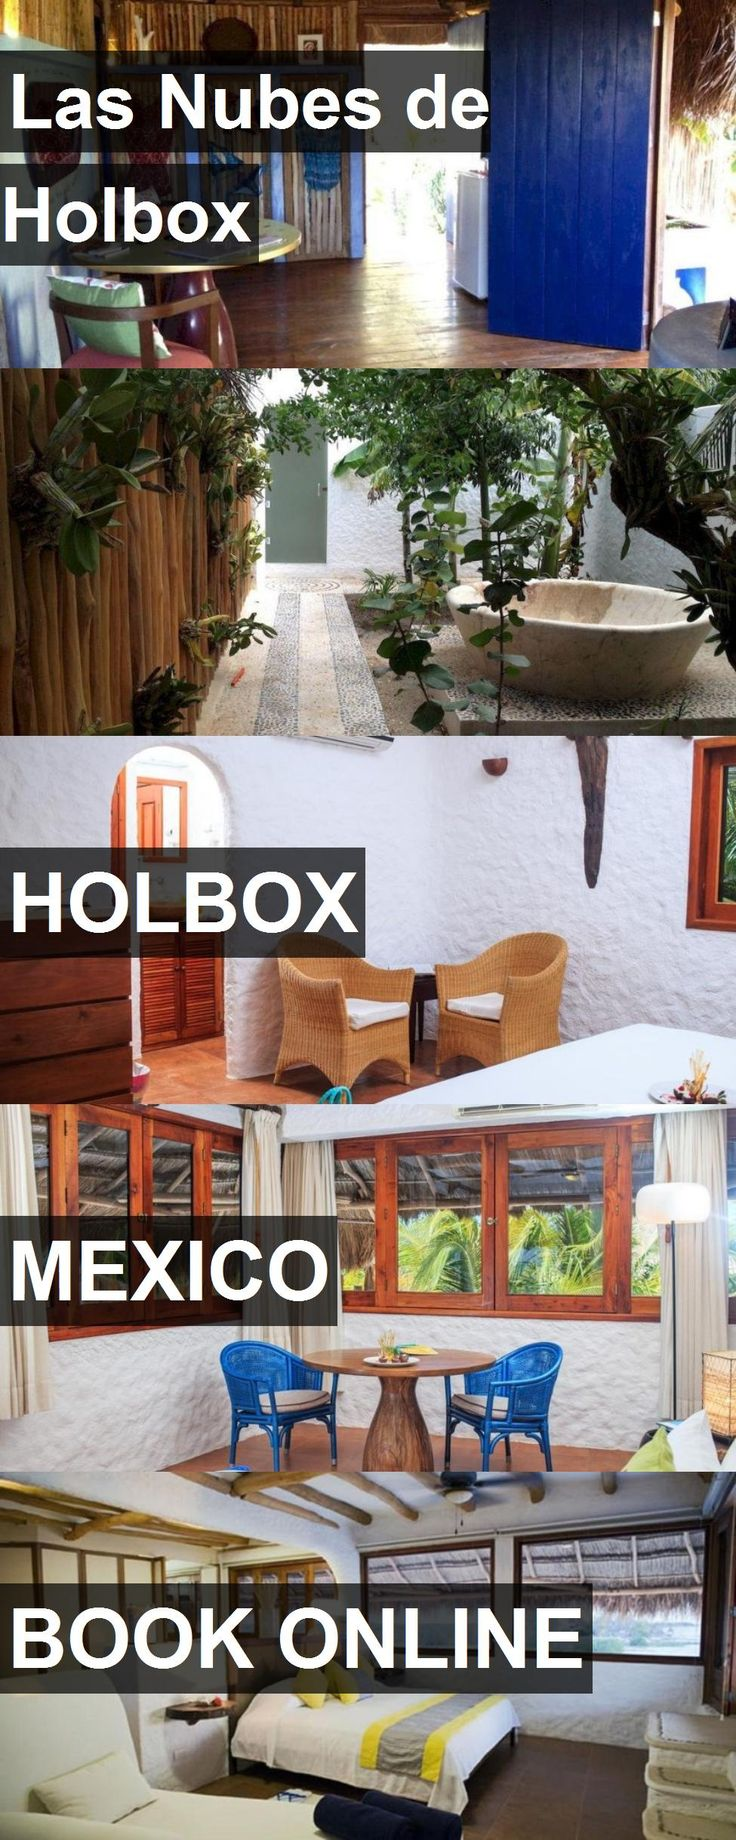 Hotel Las Nubes de Holbox in Holbox, Mexico. For more information, photos, reviews and best prices please follow the link. #Mexico #Holbox #LasNubesdeHolbox #hotel #travel #vacation